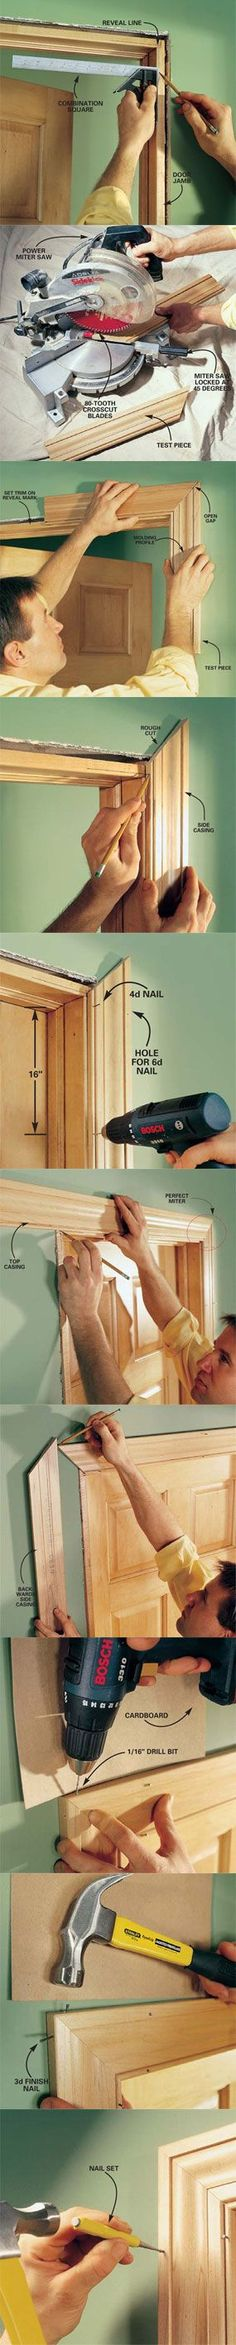 We show you how to make crisp, sharp corners and tight joints when installing door trim. With a few basic carpentry tools and a little patience, you can trim out a door quickly. With a little practice you can master the two key trim techniques, mitering a Basic Carpentry Tools, Trim Carpentry, Woodworking Projects, Learn Woodworking, Work Basics, Moldings And Trim, Moulding, Crown Molding, Interior Trim